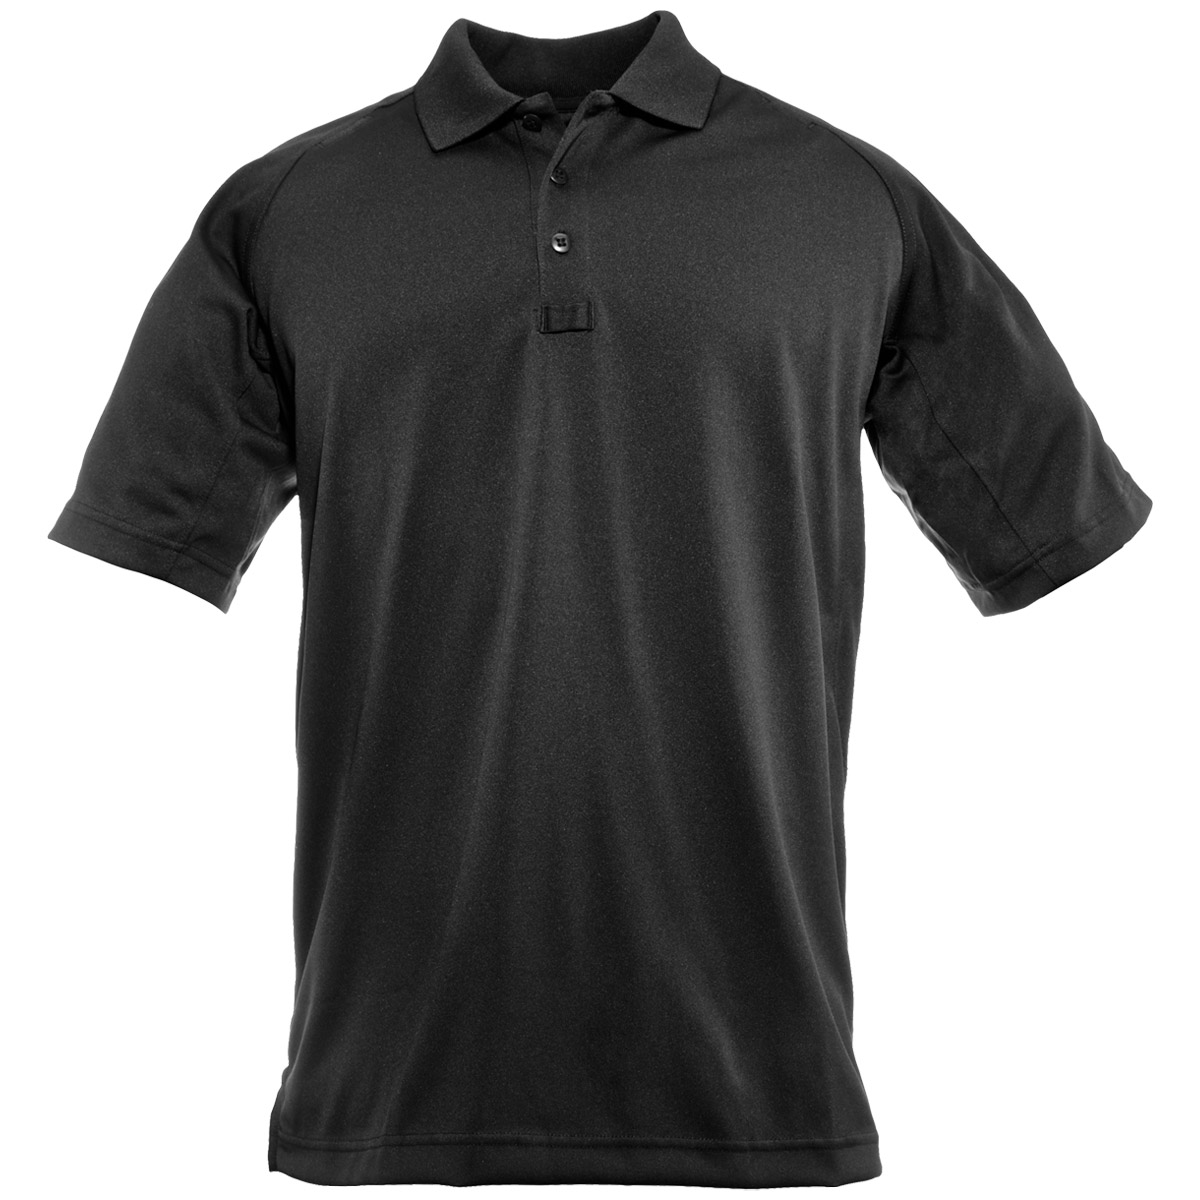 Performance mens light polo shirt security work for Mens work polo shirts